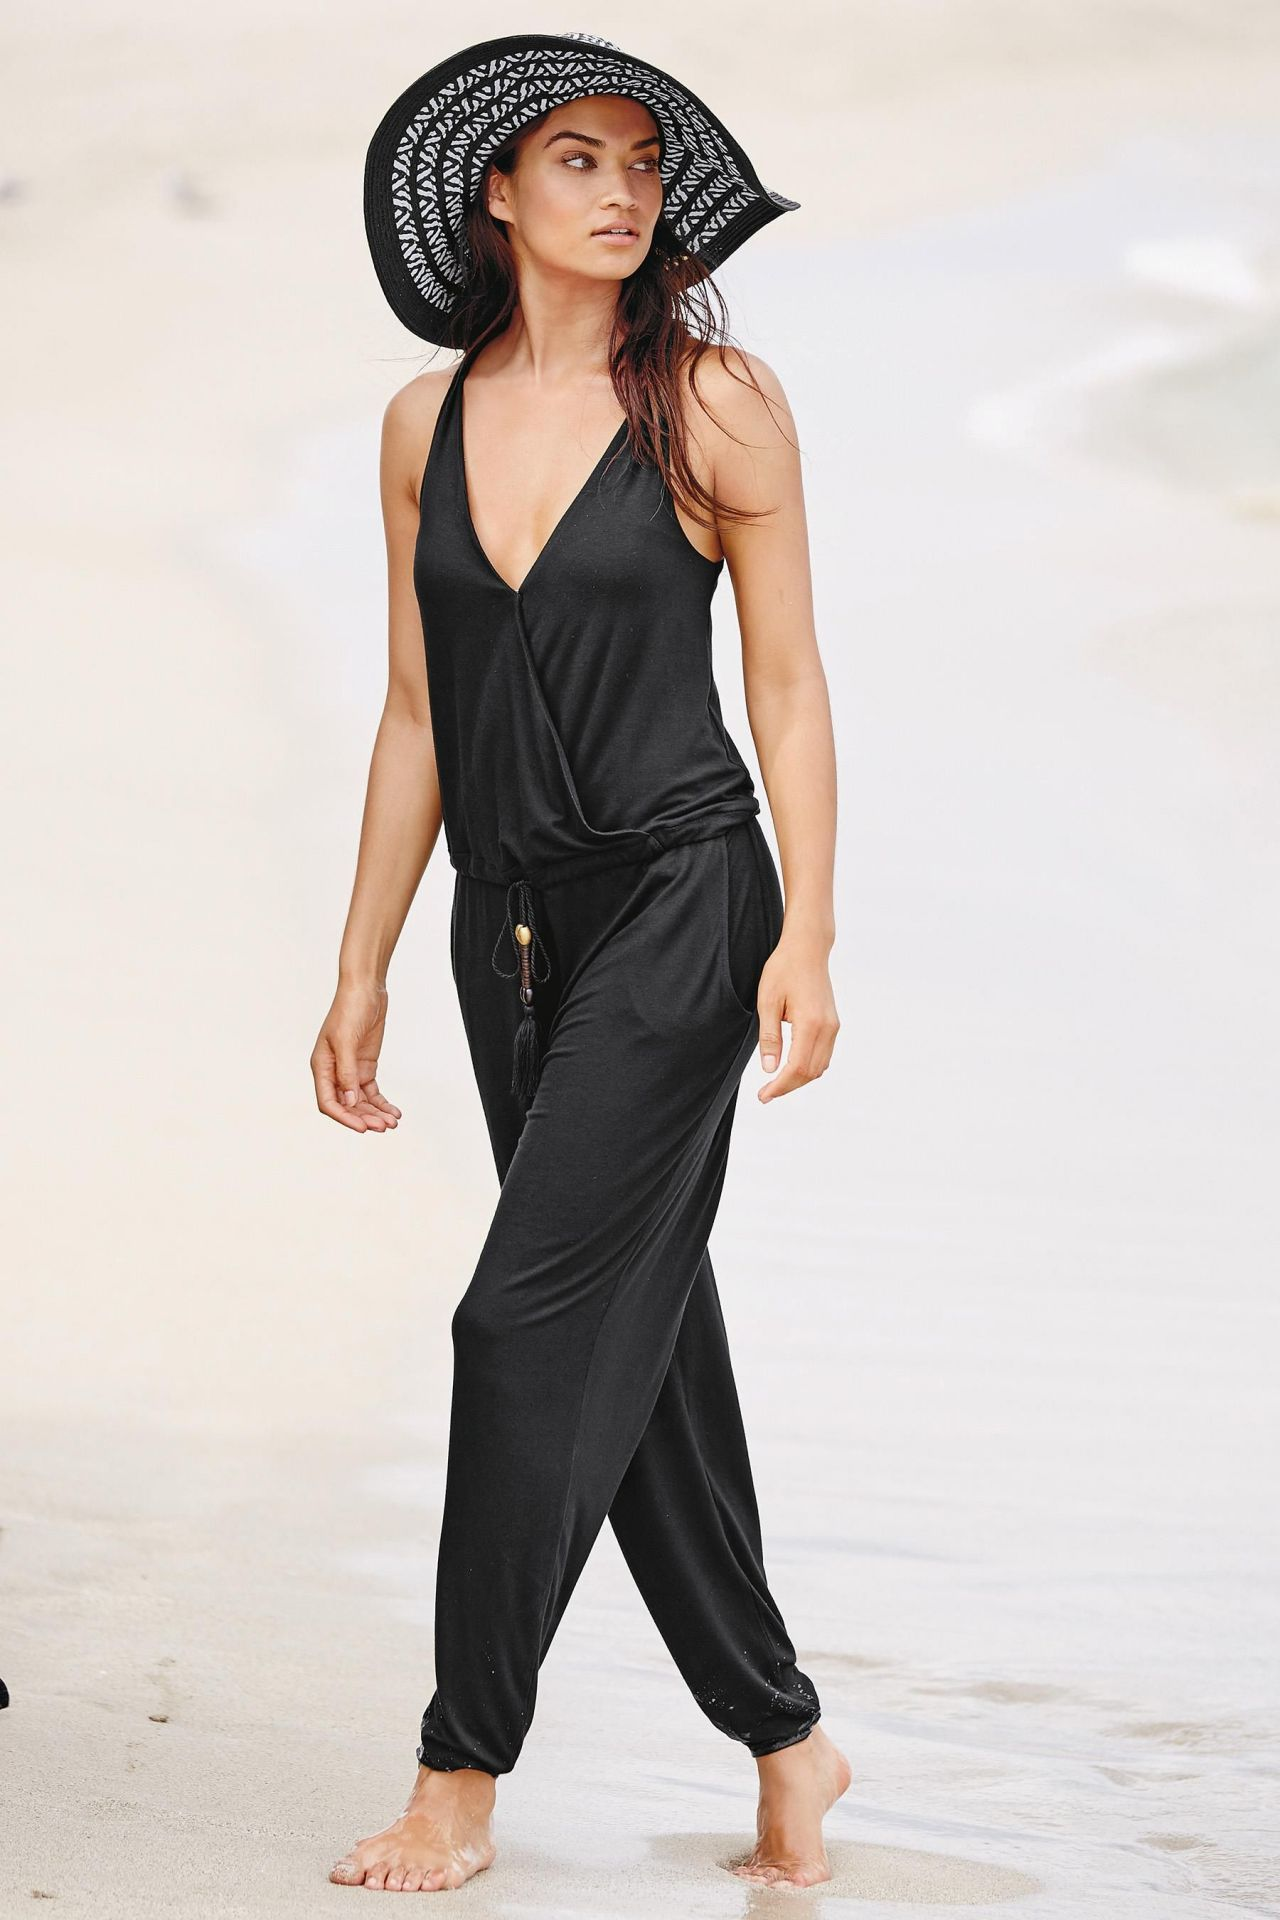 Shanina Shaik Next Swimwear And Beachwear Collection